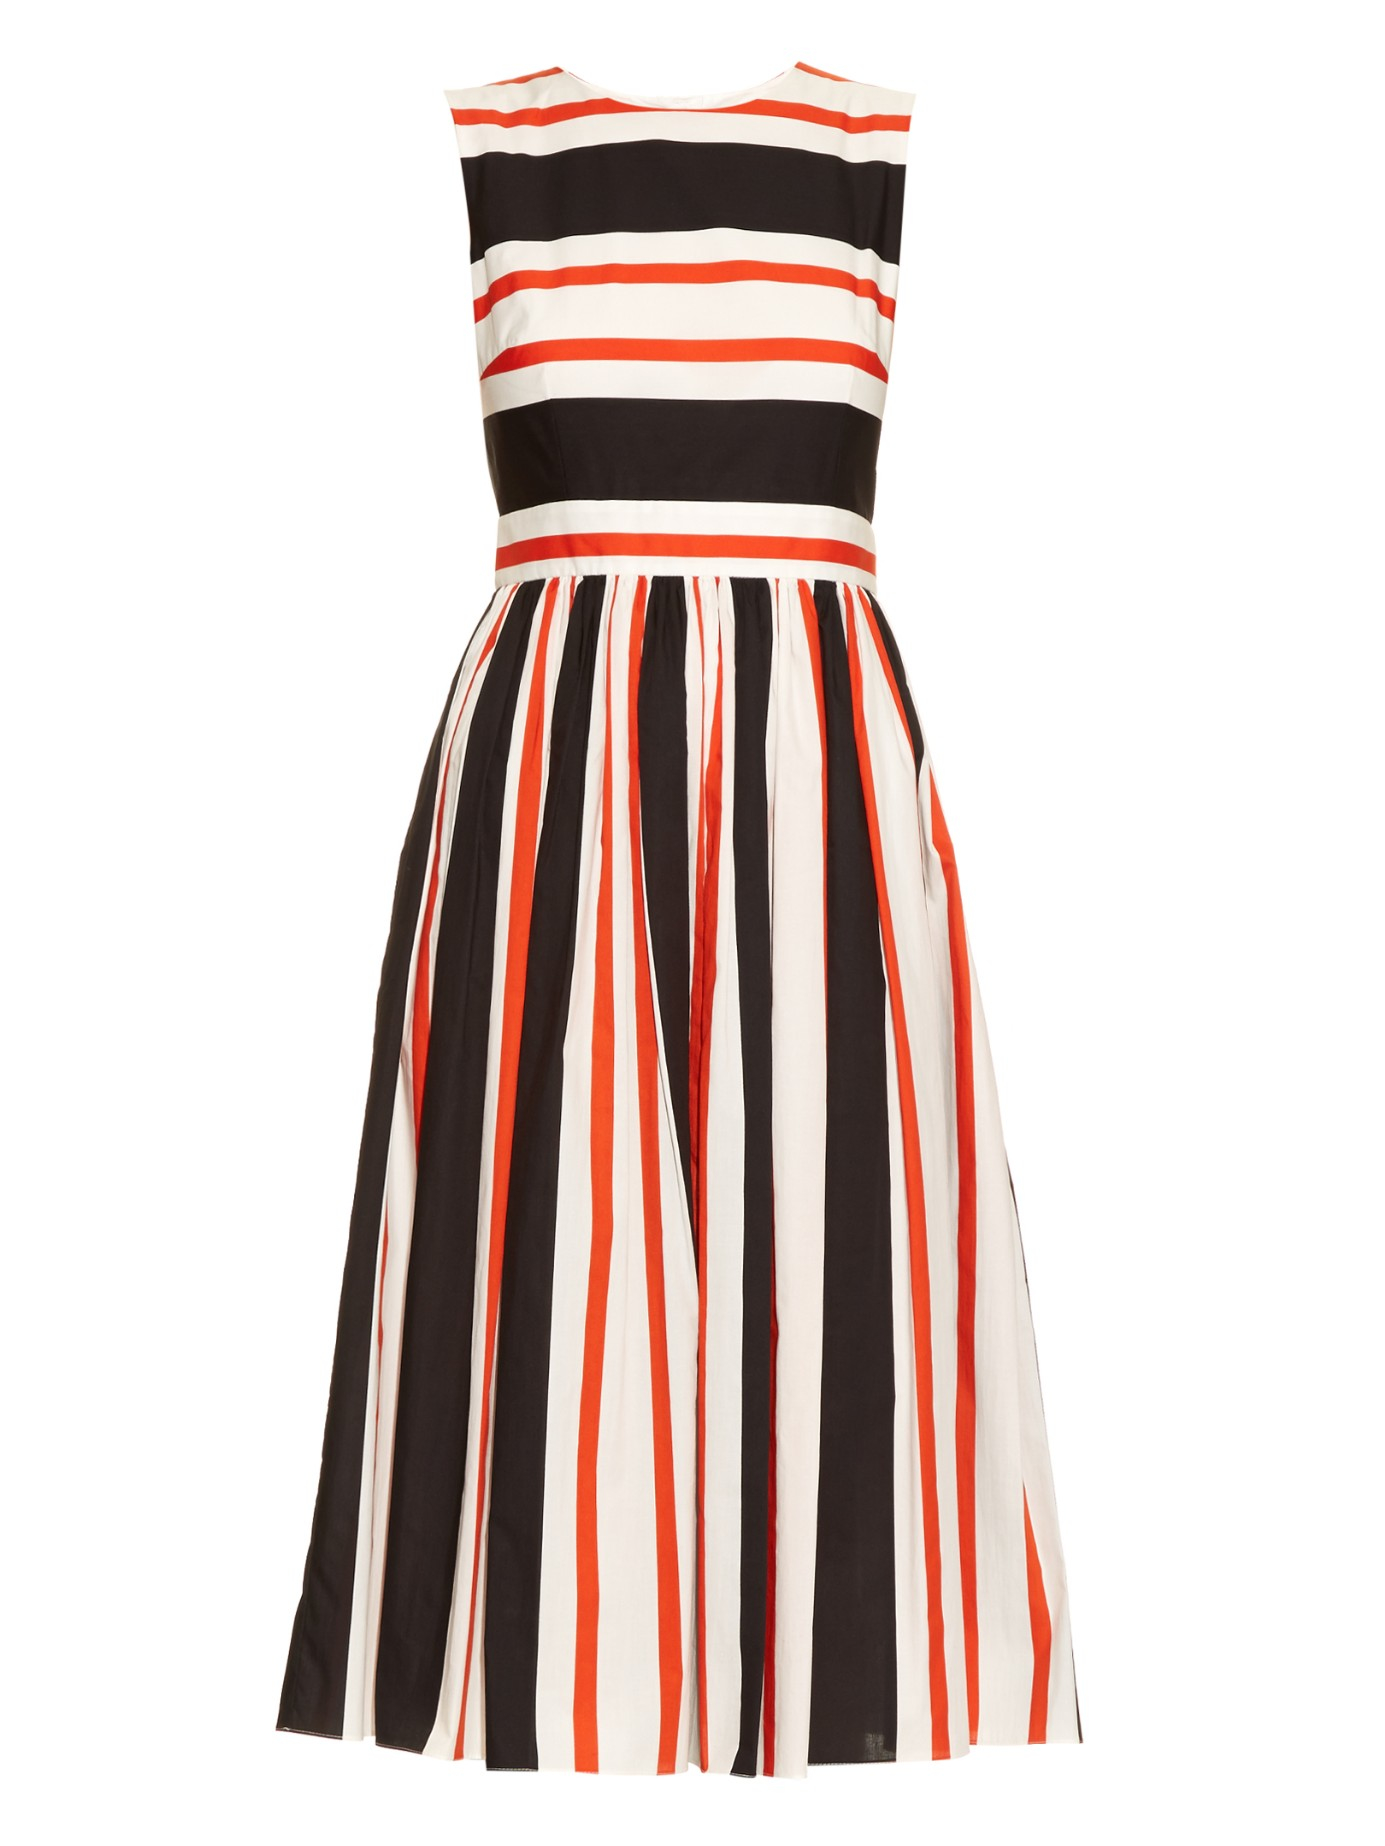 Dolce Amp Gabbana Striped Sleeveless Cotton Dress In Orange